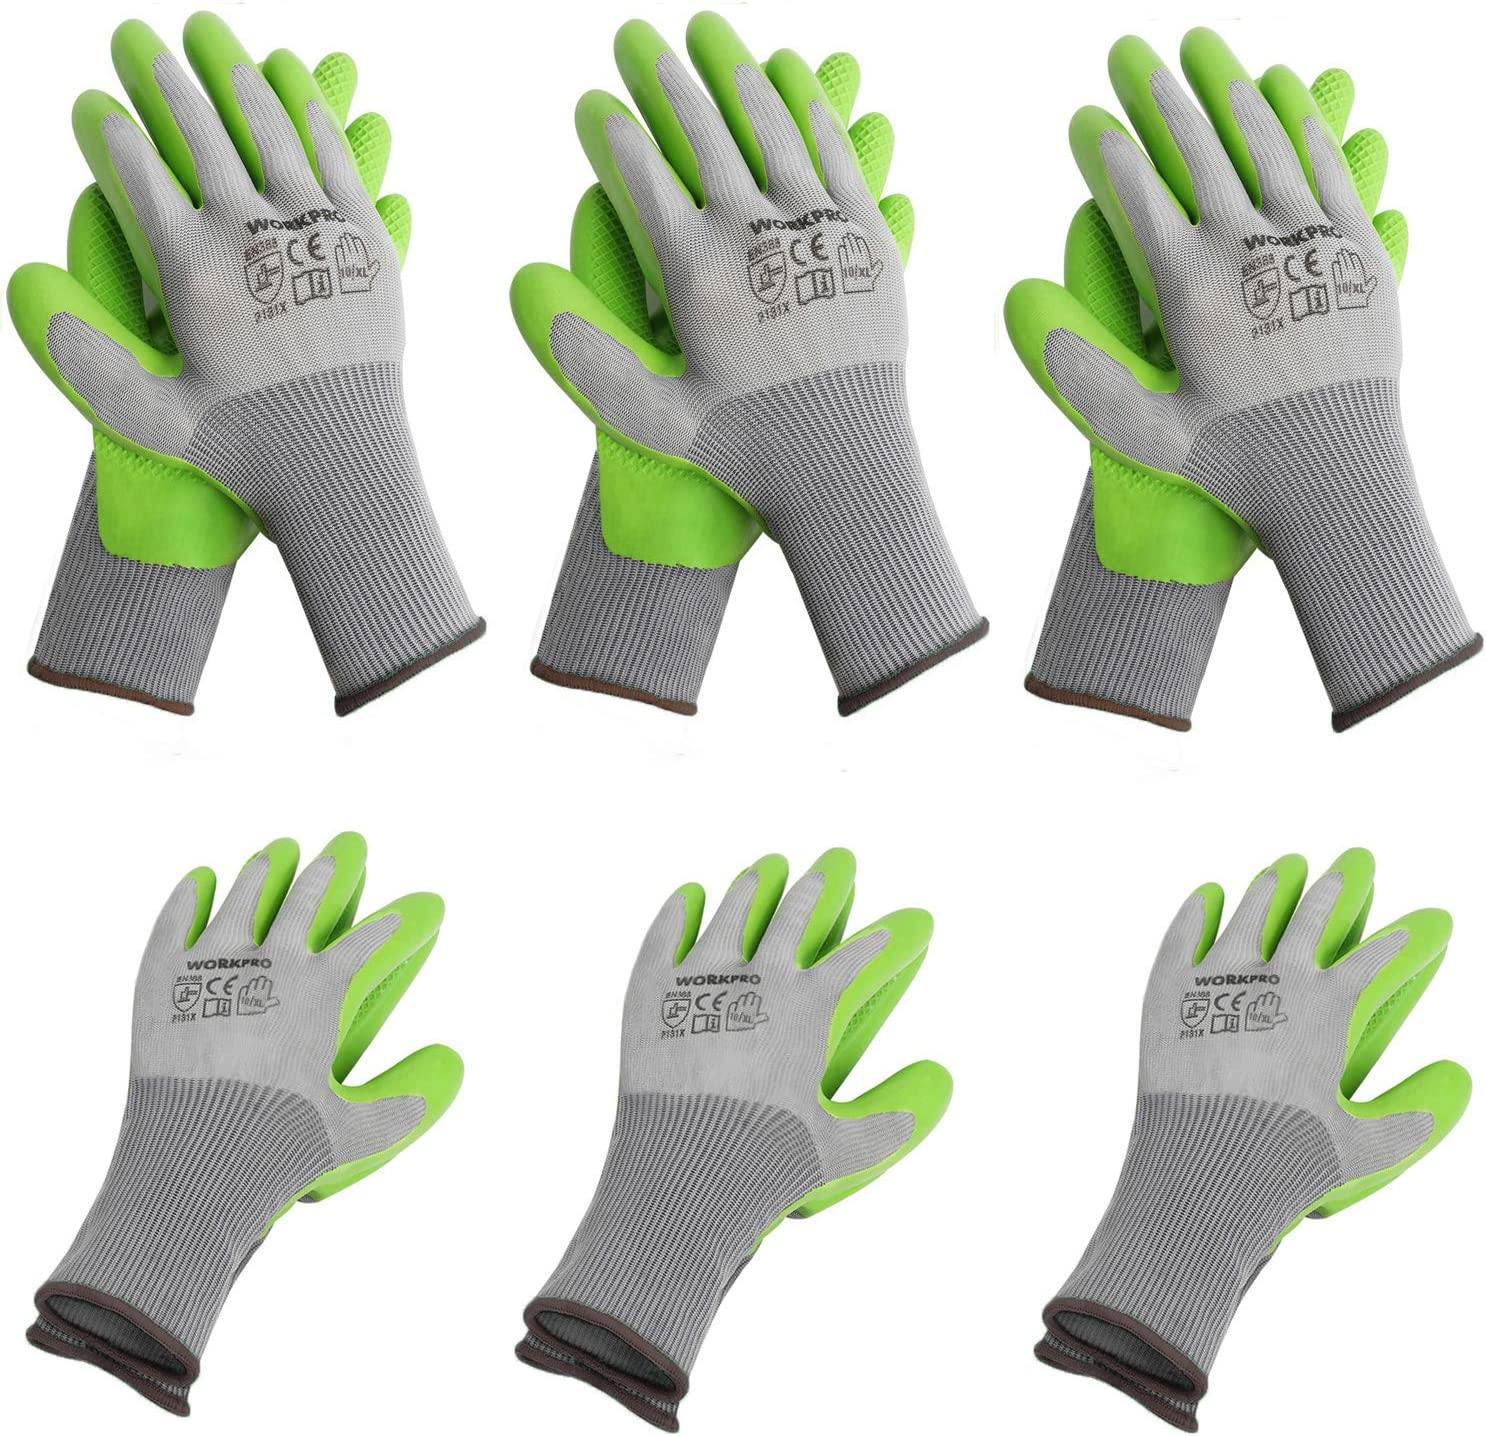 WORKPRO 6 Pairs Garden Gloves, Work Glove with Eco Latex Palm Coated, Working Gloves for Weeding, Digging, Raking and Pruning(XL)